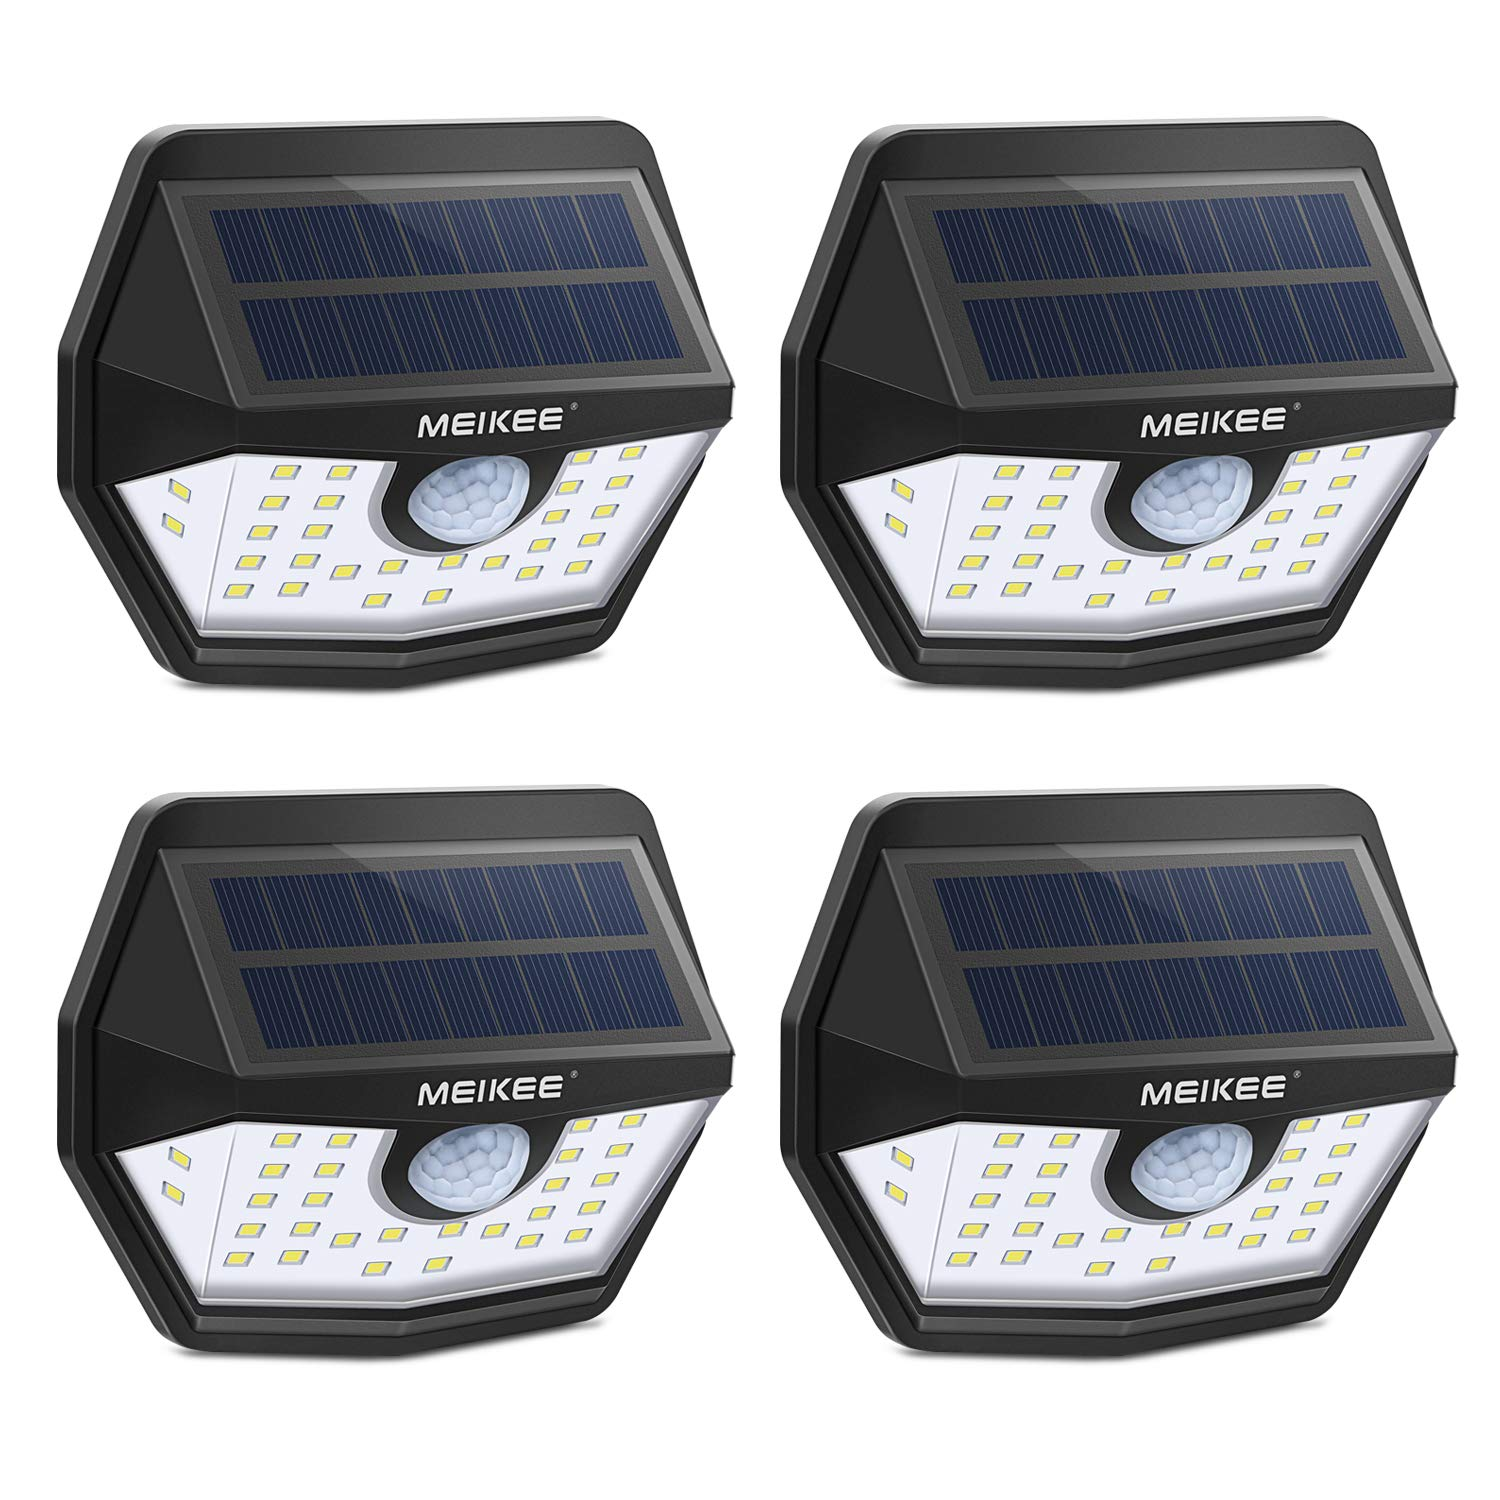 MEIKEE Solar Lights Outdoor, 30 LED Wireless IP65 Waterproof Motion Sensor Light,Easy to Install Solar Lights with 120 Wide Angle,LED Solar Lights Perfect for Patio,Yard,Garden,Garage 450 LM,4-Pack